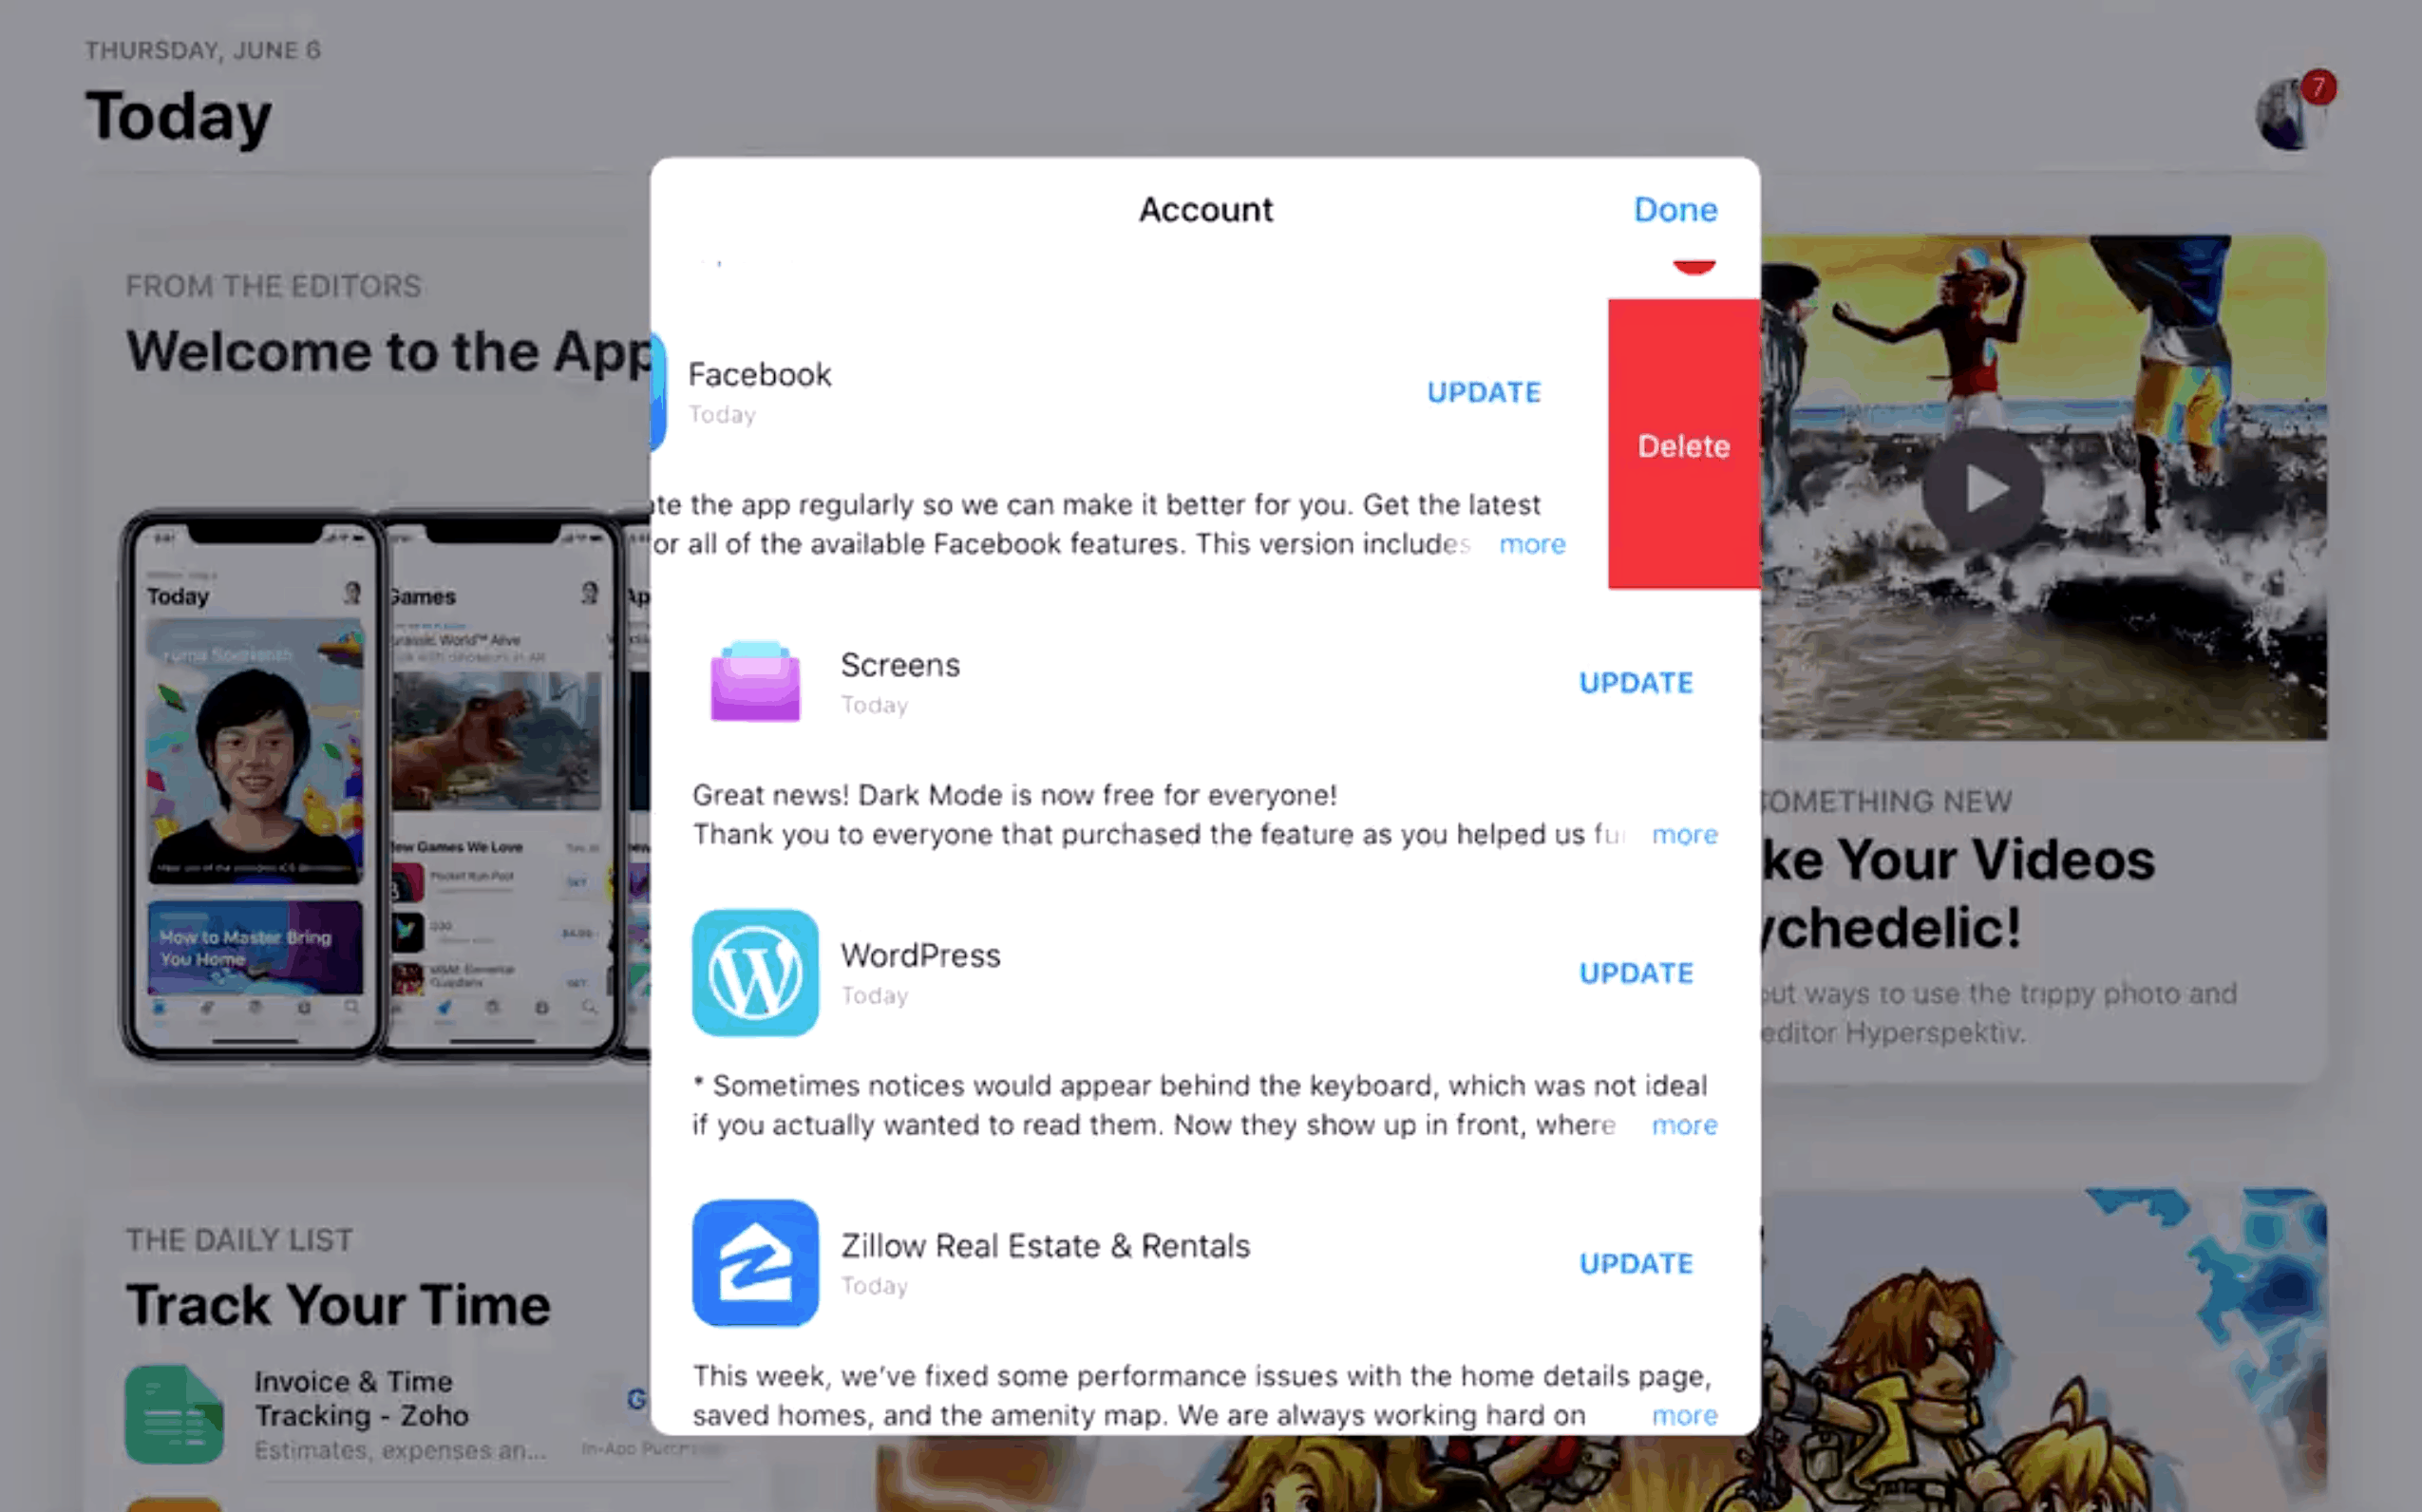 iOS 13 Allows For App Deletion In The Update Section